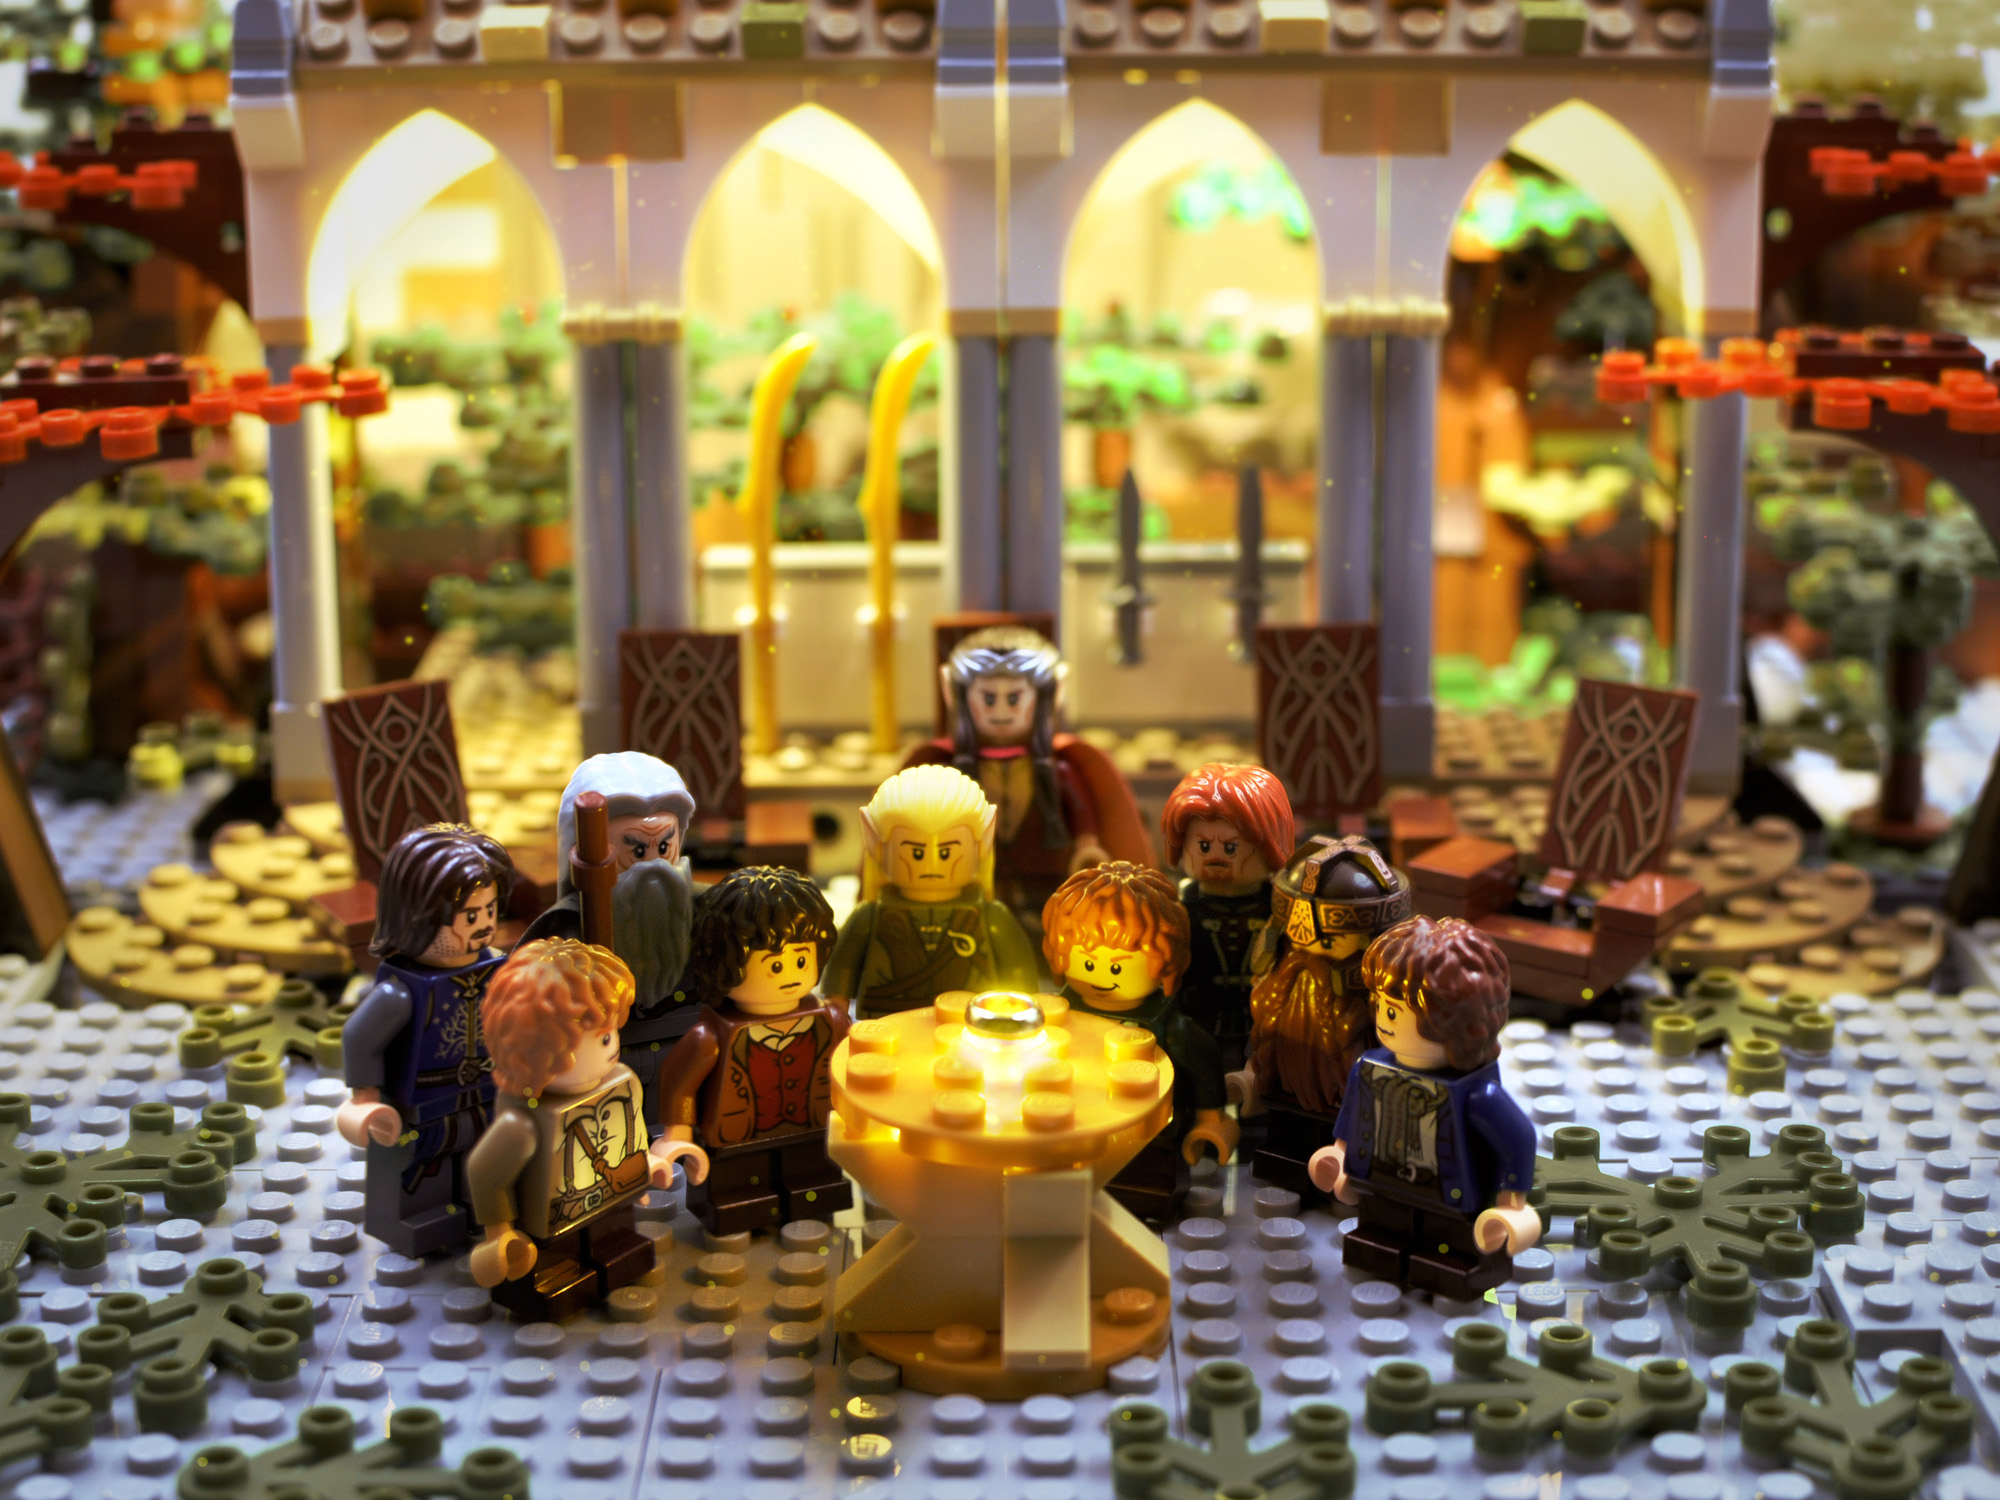 The Lord of the Rings in Lego: Part Two